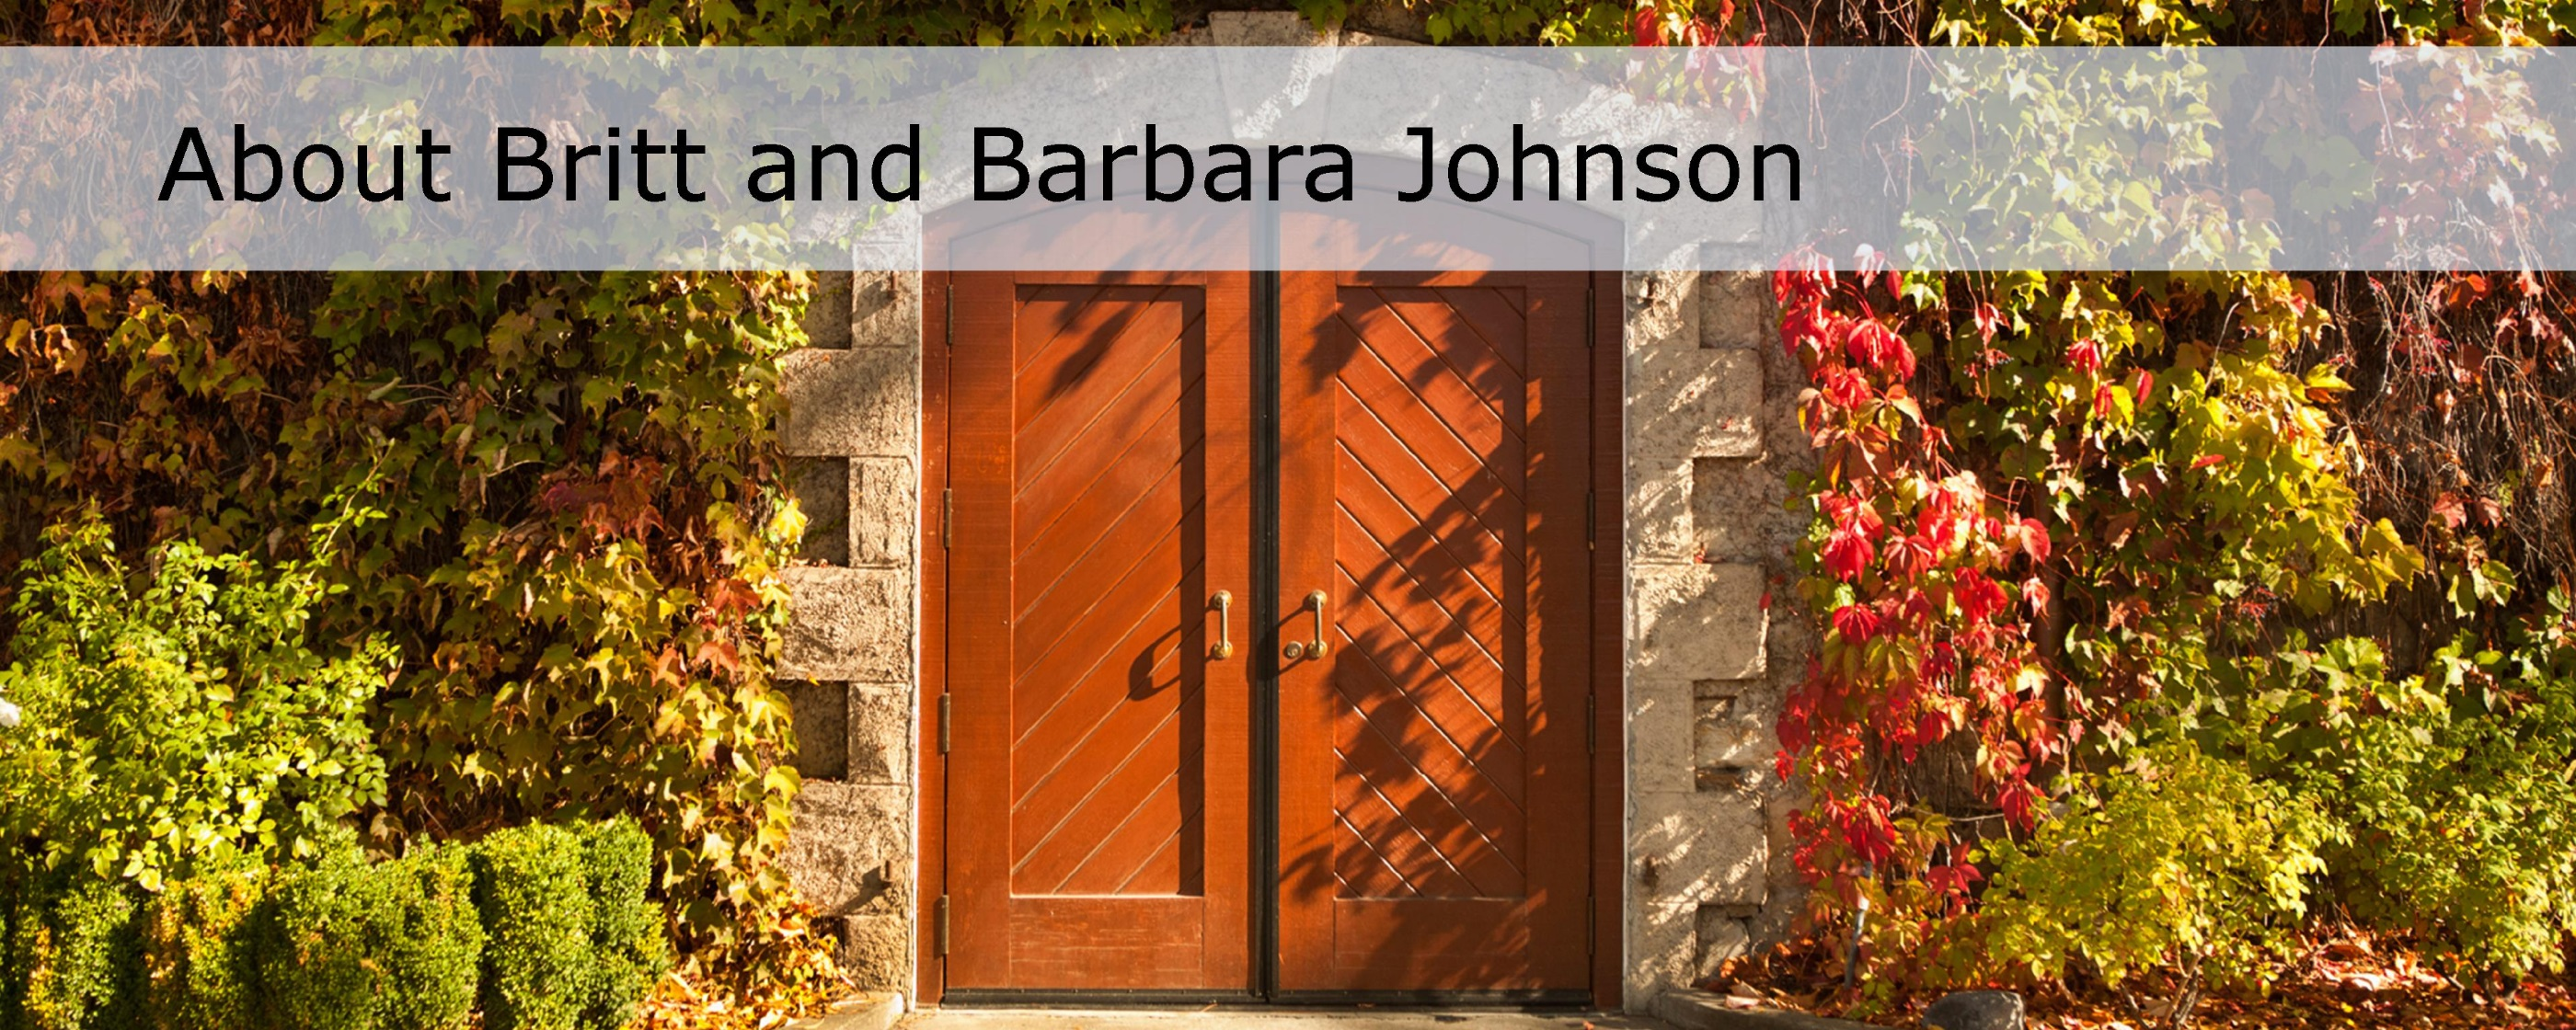 about britt and barbara johnson